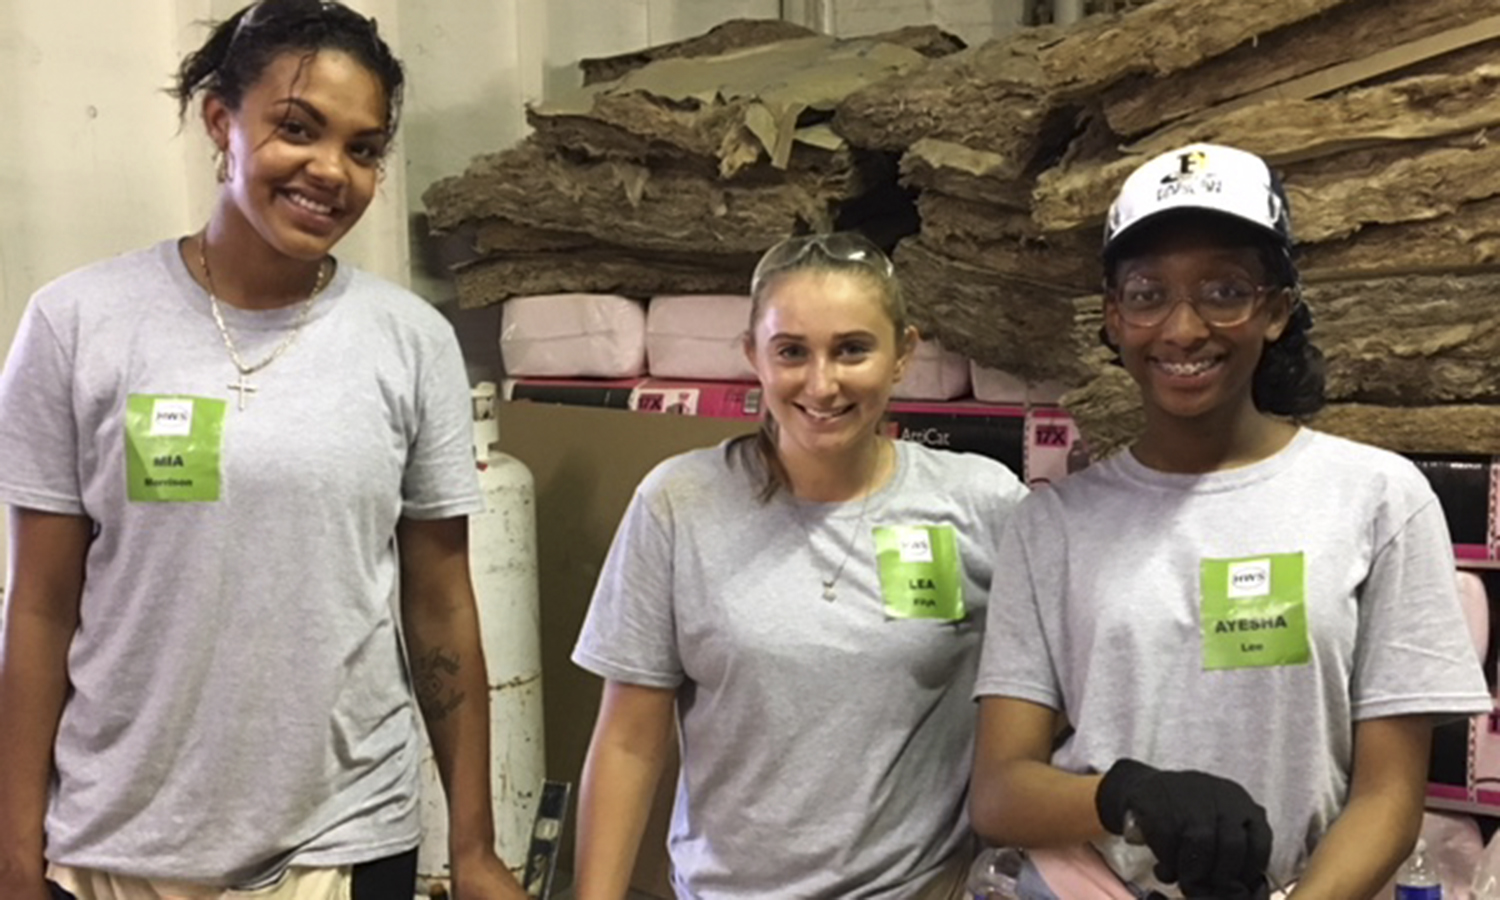 Recipients of the Farash Foundation First in Family Scholarship Mia Morrison '19, Lea Filyk '21 and Ayesha Lee '22 participate in Farash's Day of Service at Flower City Habitat for Humanity in Rochester, NY. The Max and Marian Farash Charitable Foundation funds this scholarship in order to allow local HWS students who are the first in their families to attend college reach their academic goals debt-free.